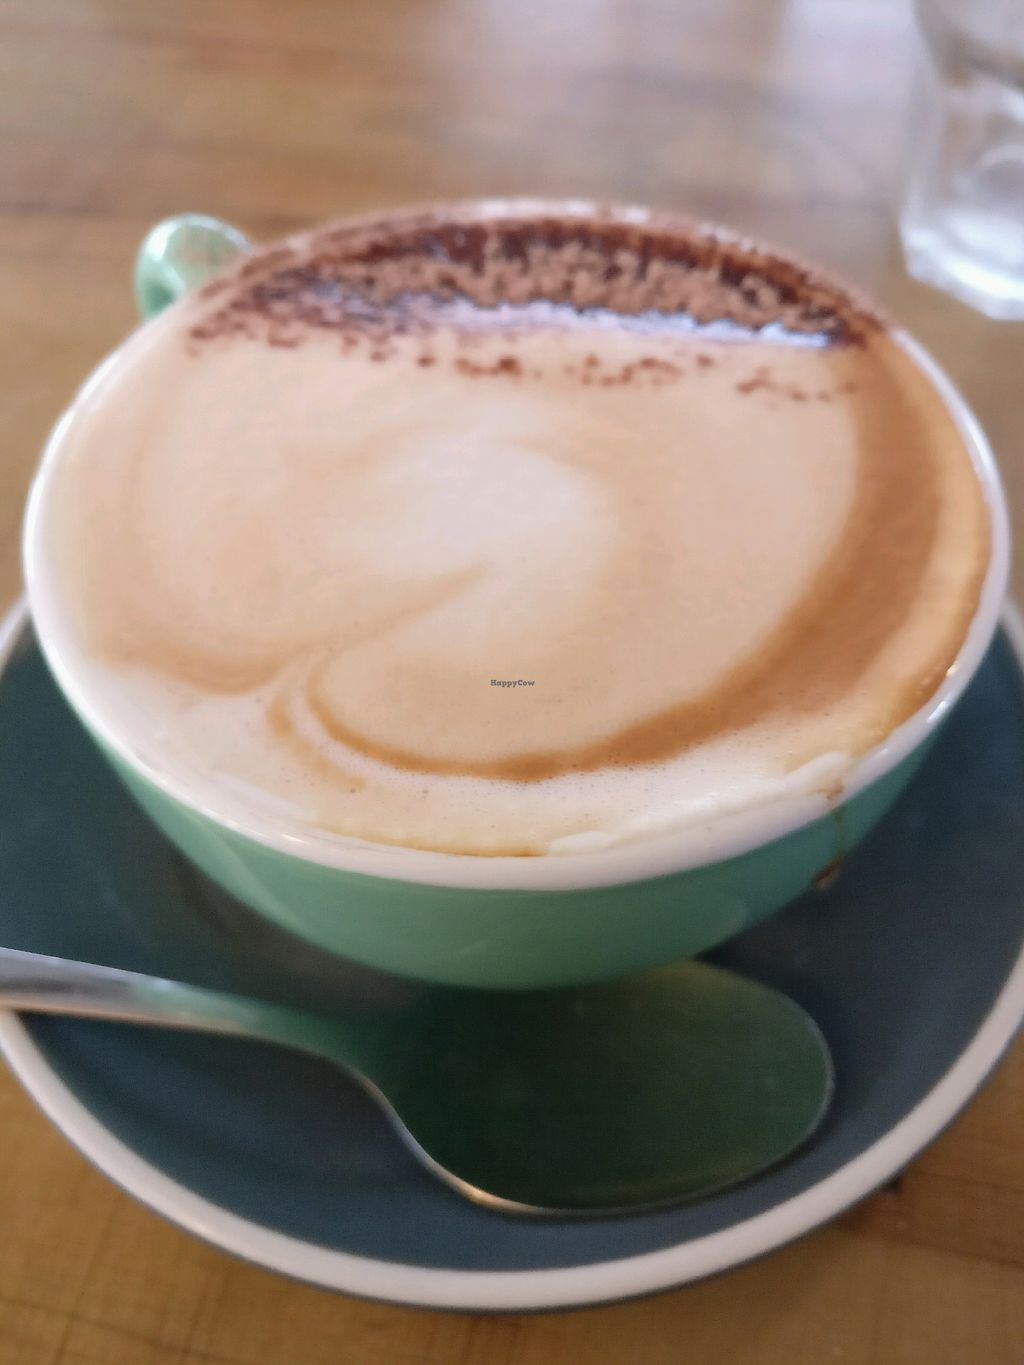 "Photo of Abracadabra Cafe & Bar  by <a href=""/members/profile/Aloo"">Aloo</a> <br/>Best almond milk coffee I've had in new Zealand <br/> September 14, 2017  - <a href='/contact/abuse/image/83470/304101'>Report</a>"